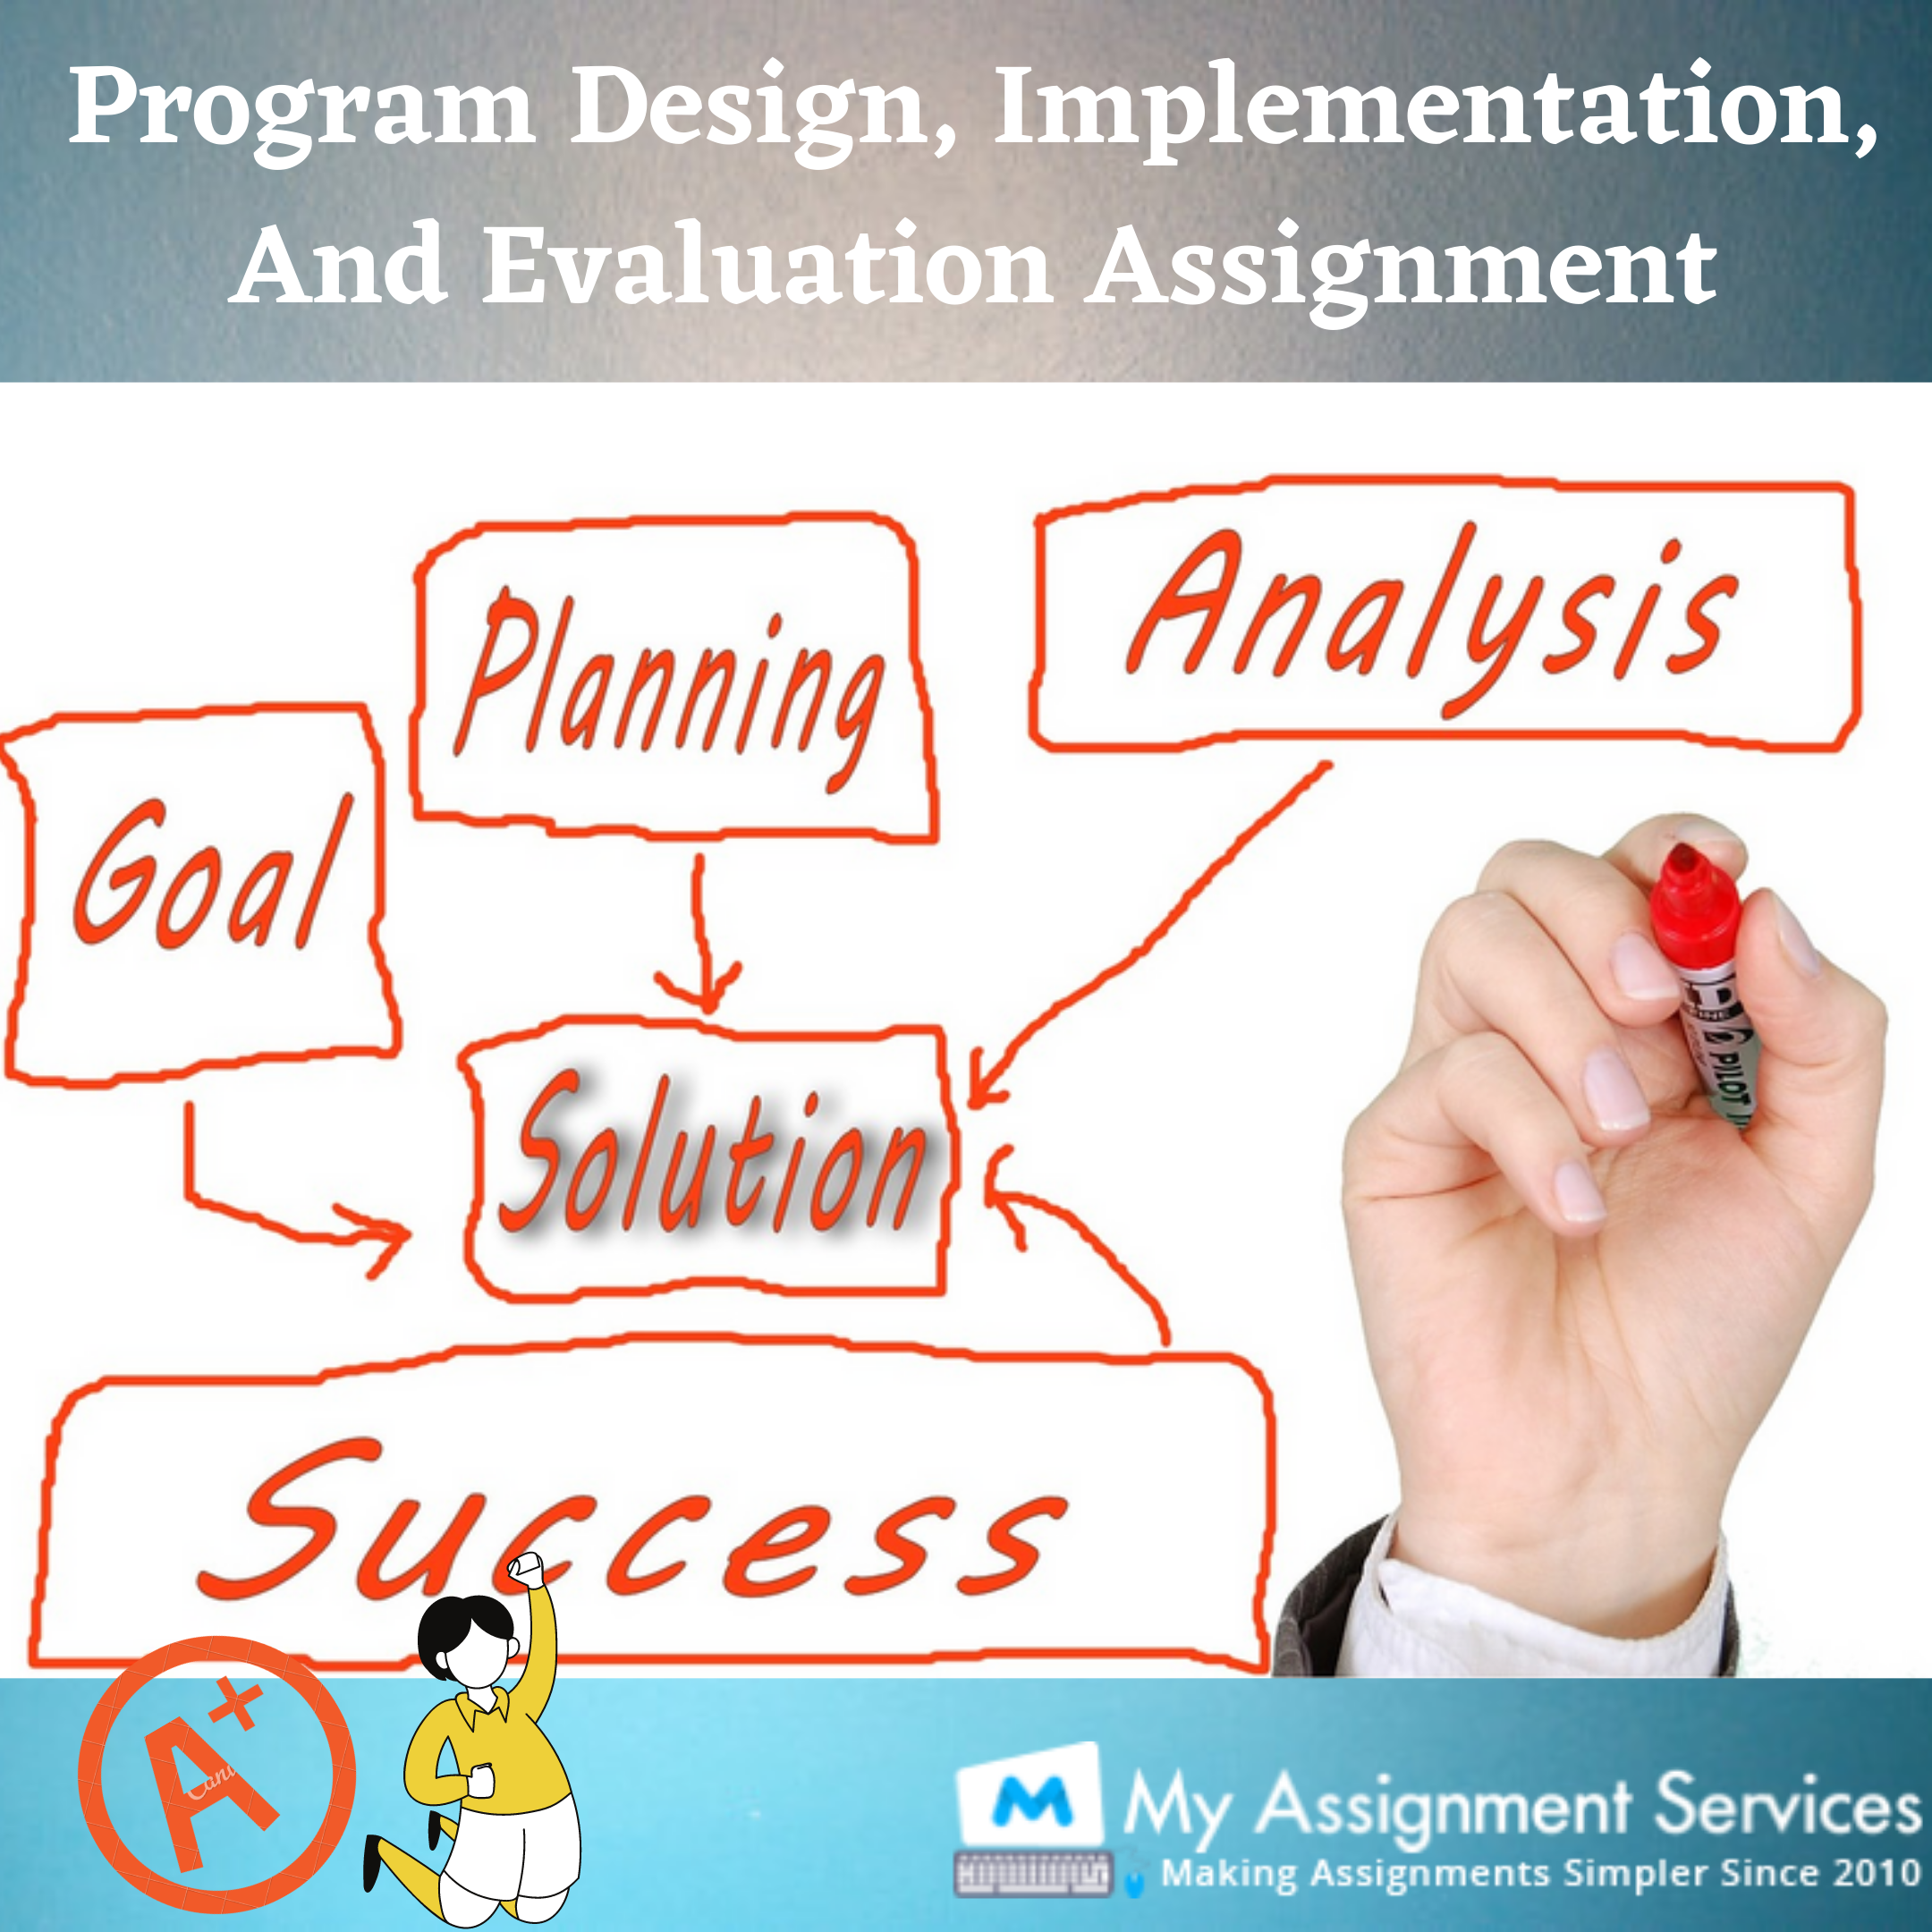 Program design, implementation, and evaluation assignment help experts